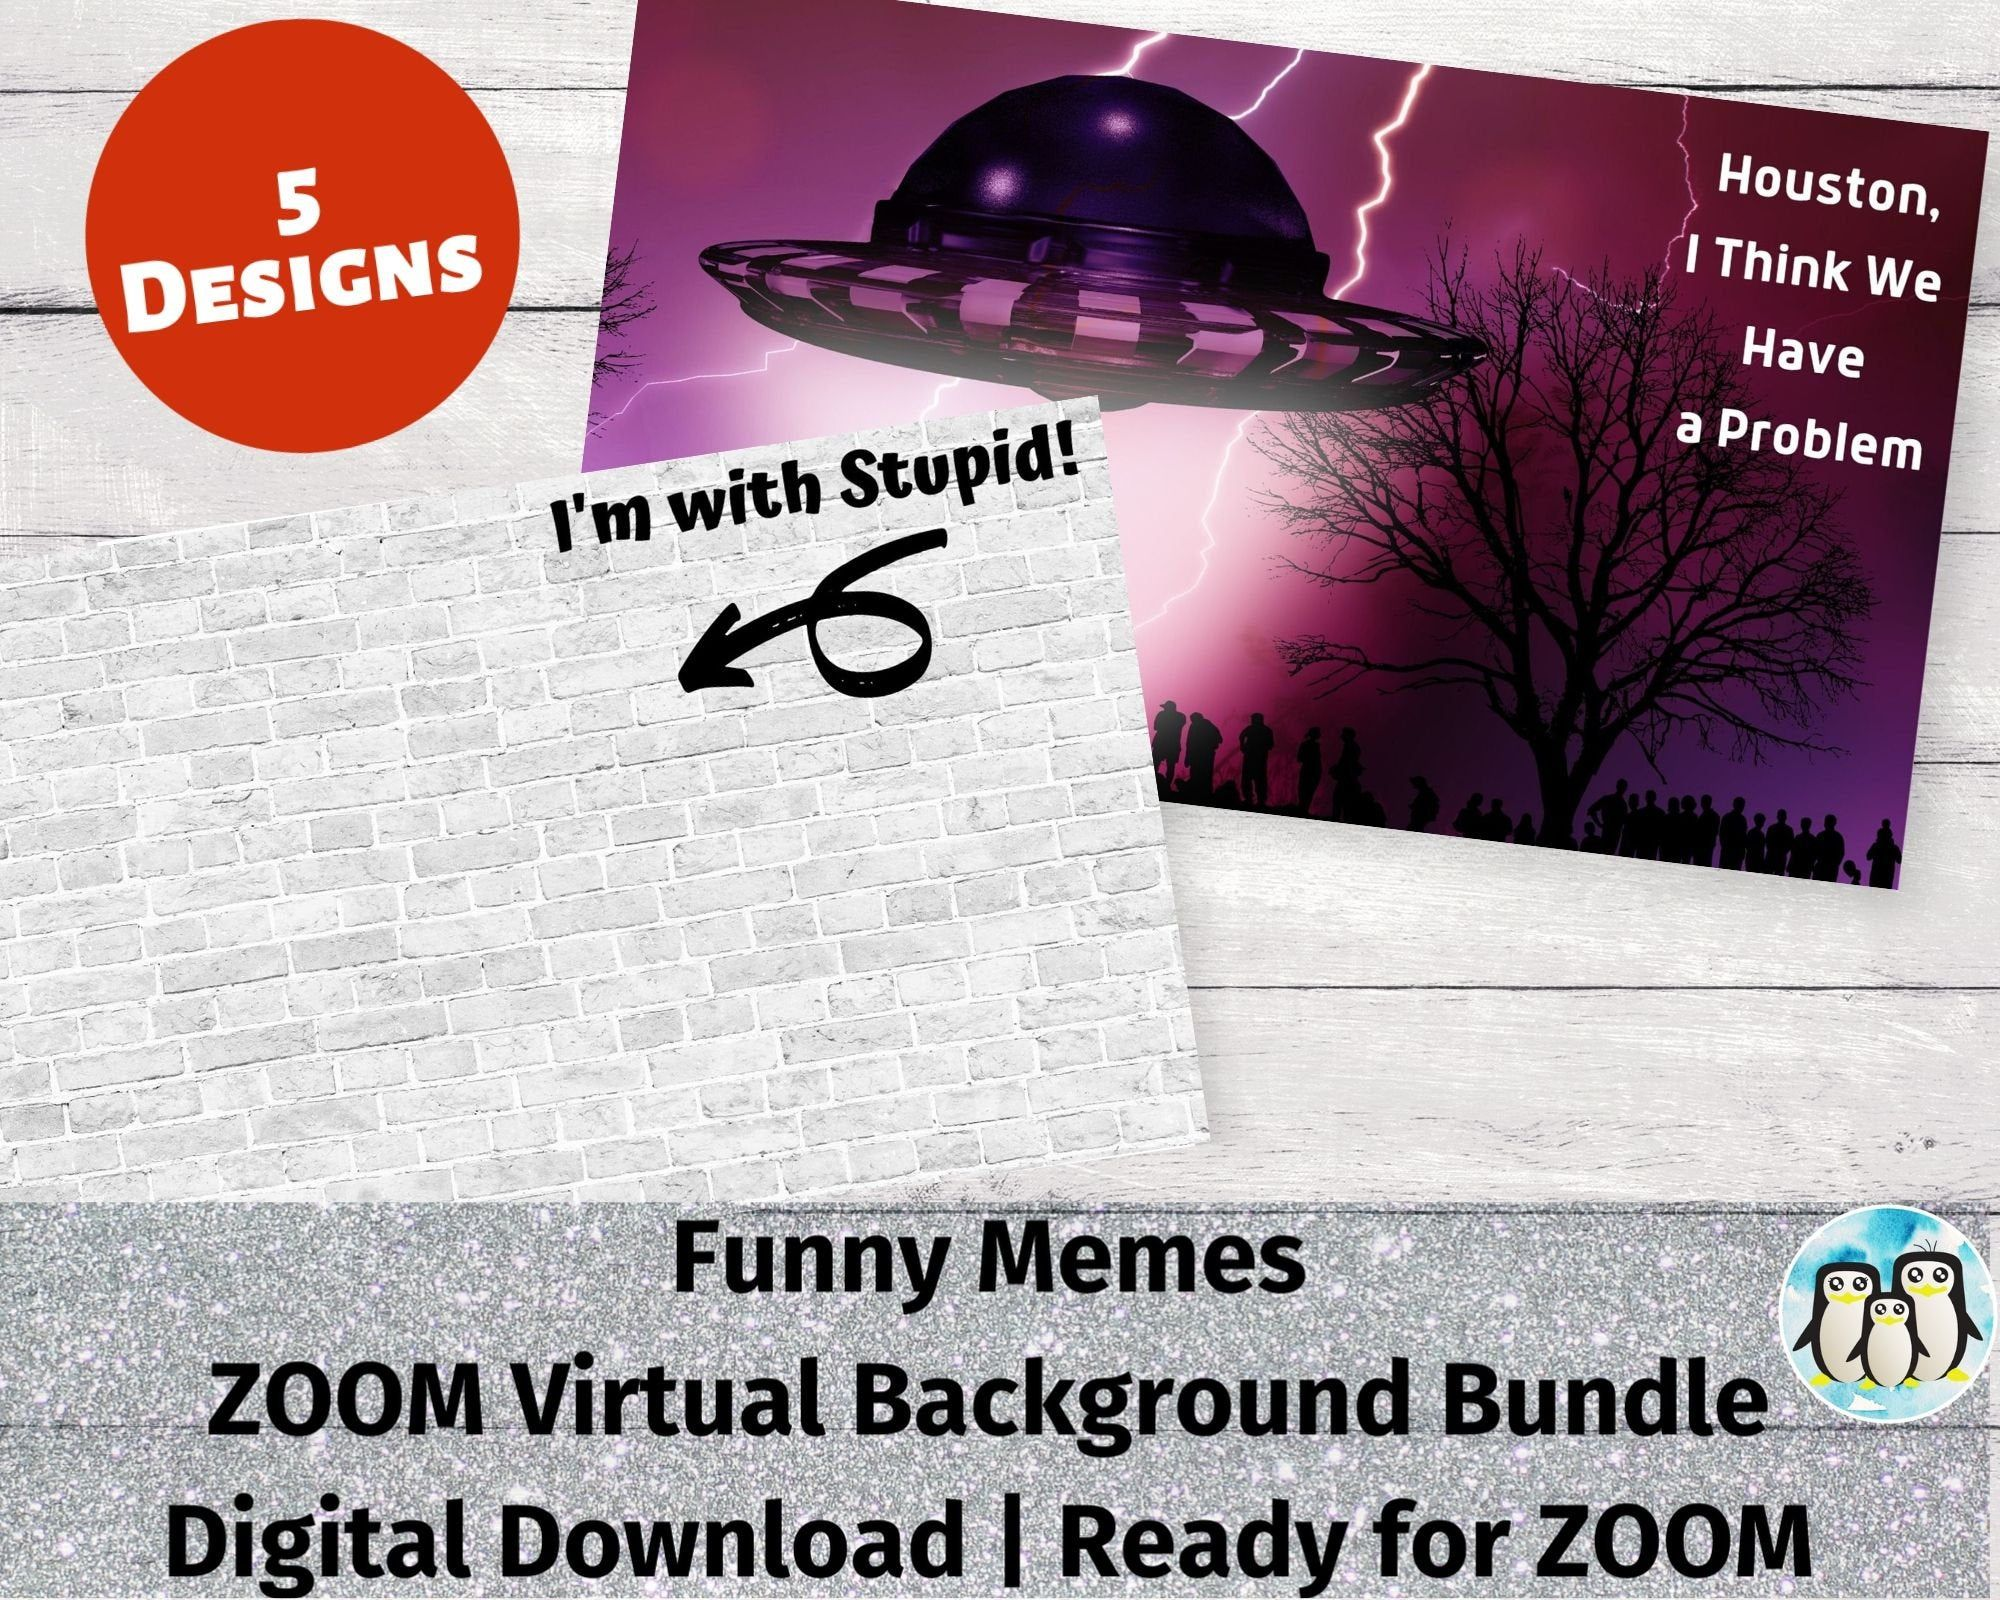 Zoom Virtual Background Bundle Of 5 Funny Memes Zoom Etsy Funny Memes Name Games Party Names